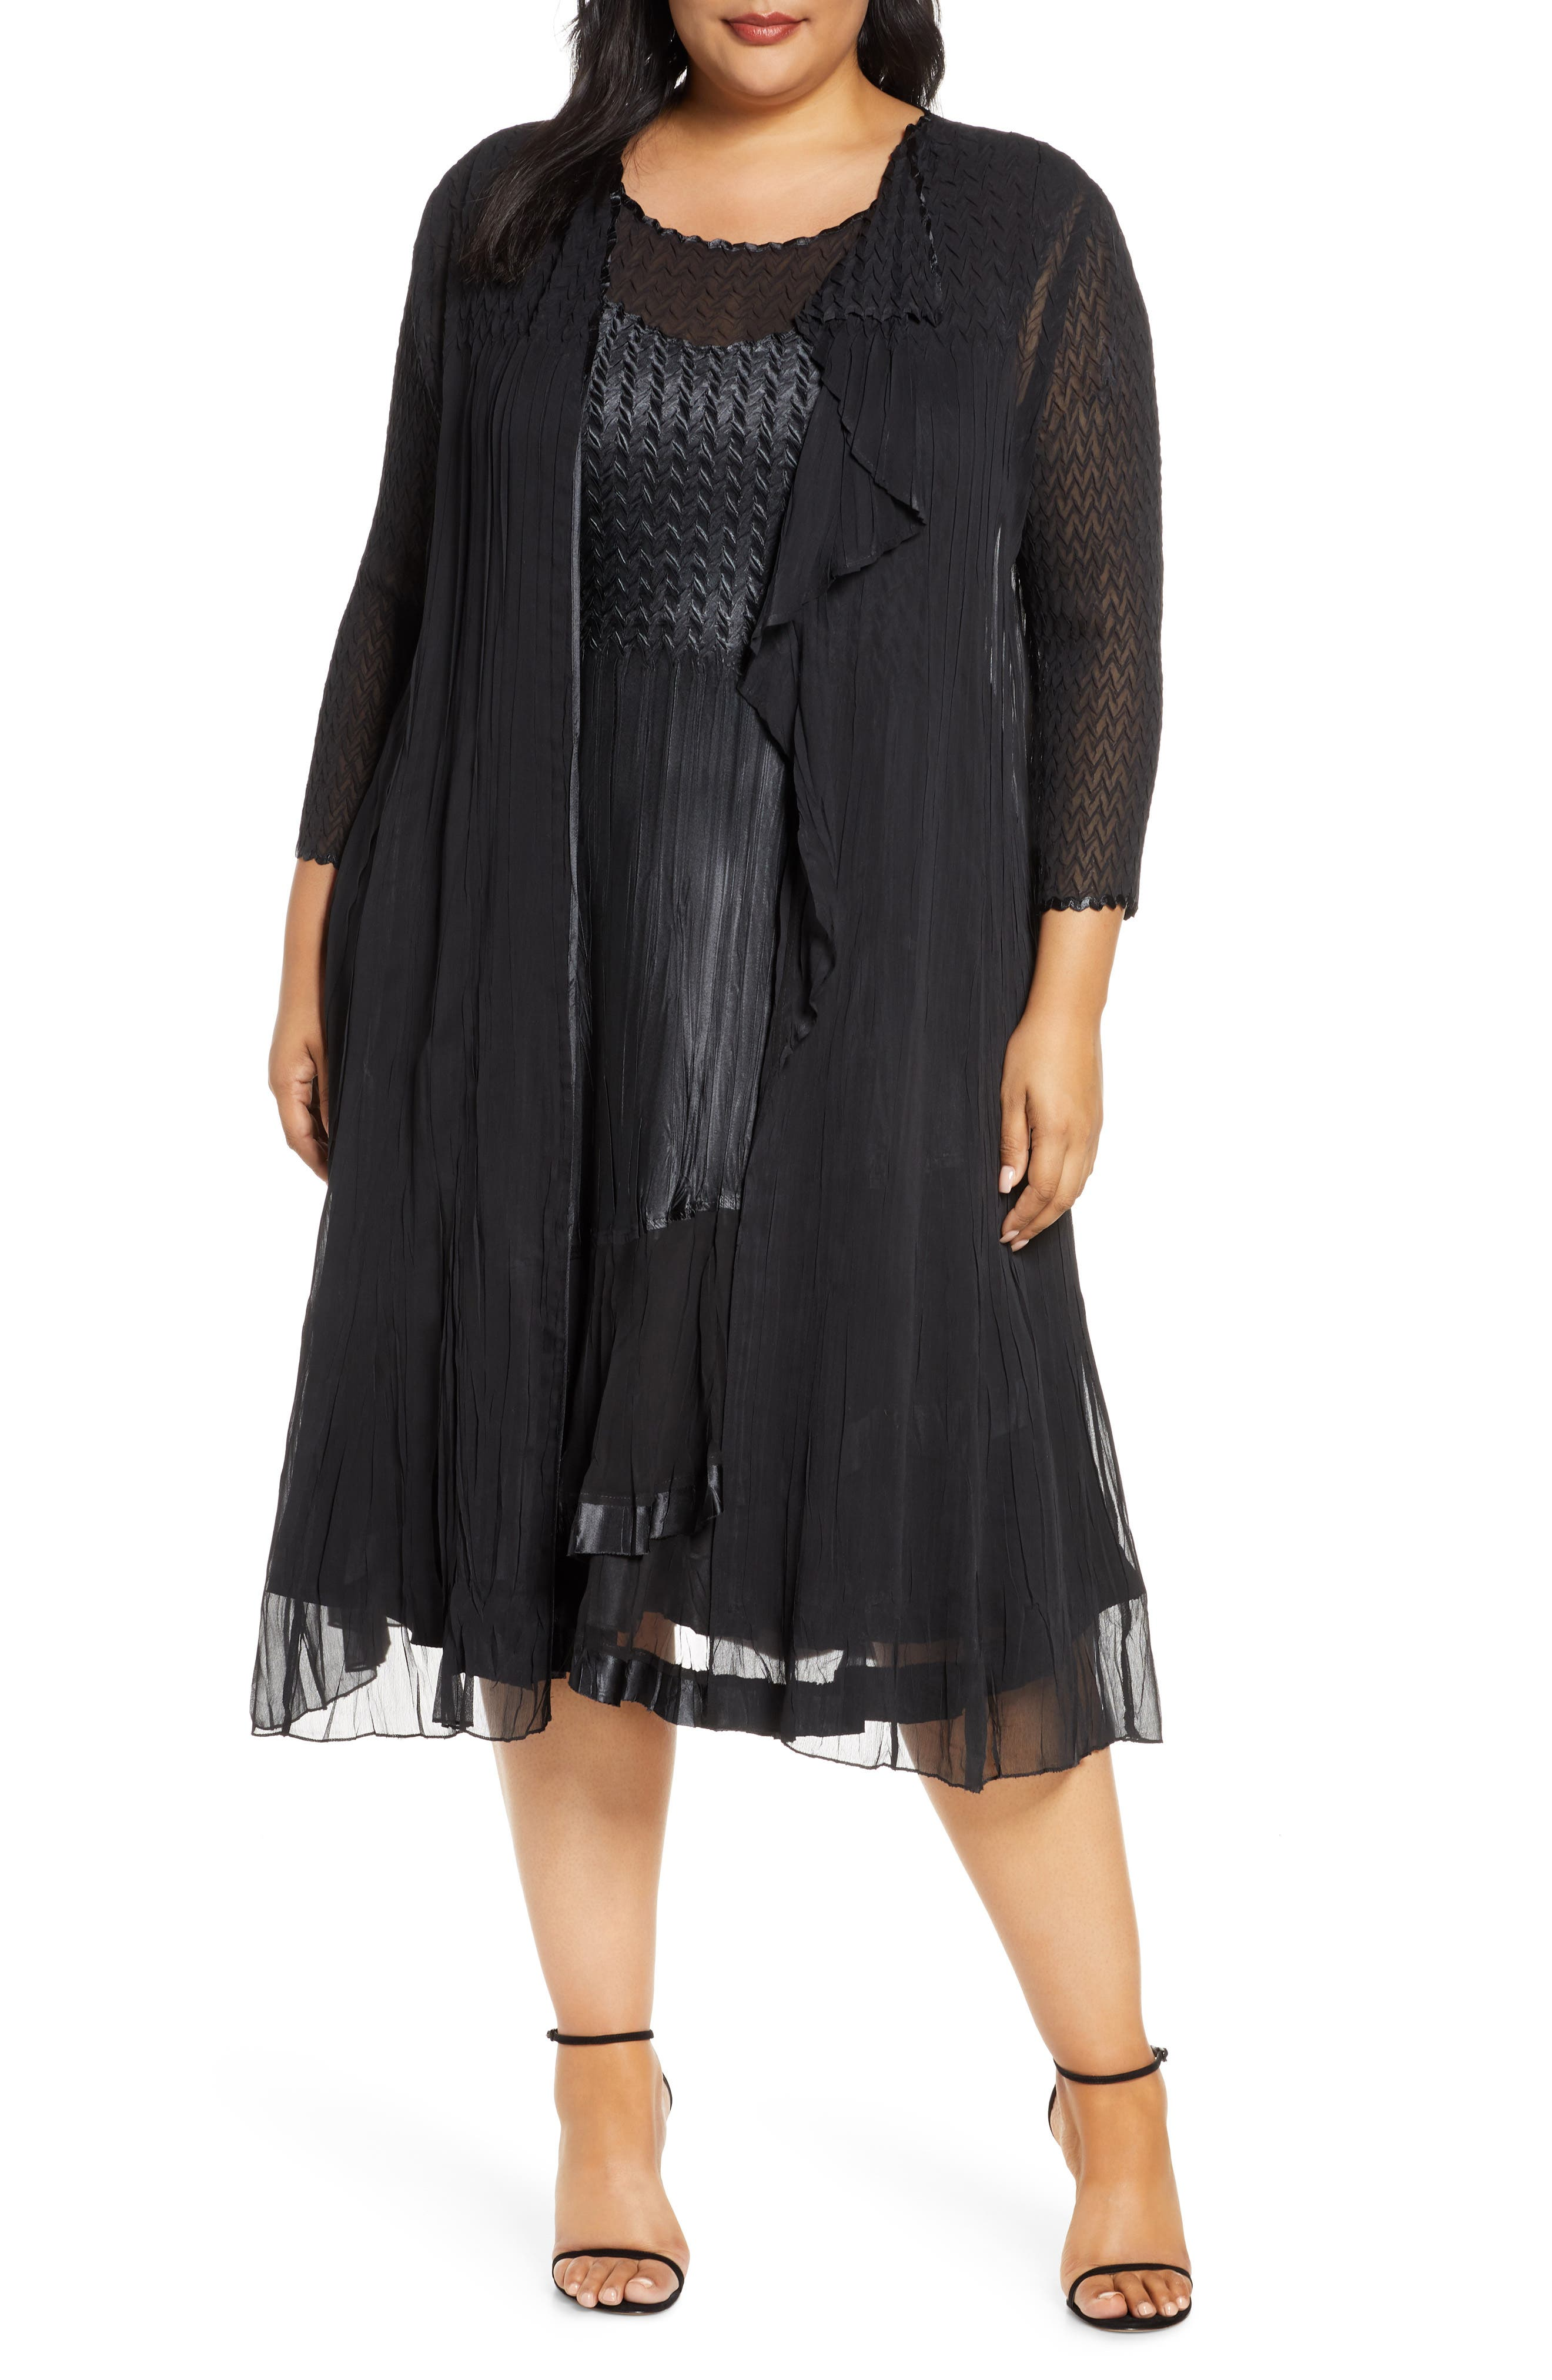 1920s Plus Size Flapper Dresses, Gatsby Dresses, Flapper Costumes Plus Size Womens Komarov Charmeuse Midi Dress With Jacket $460.00 AT vintagedancer.com